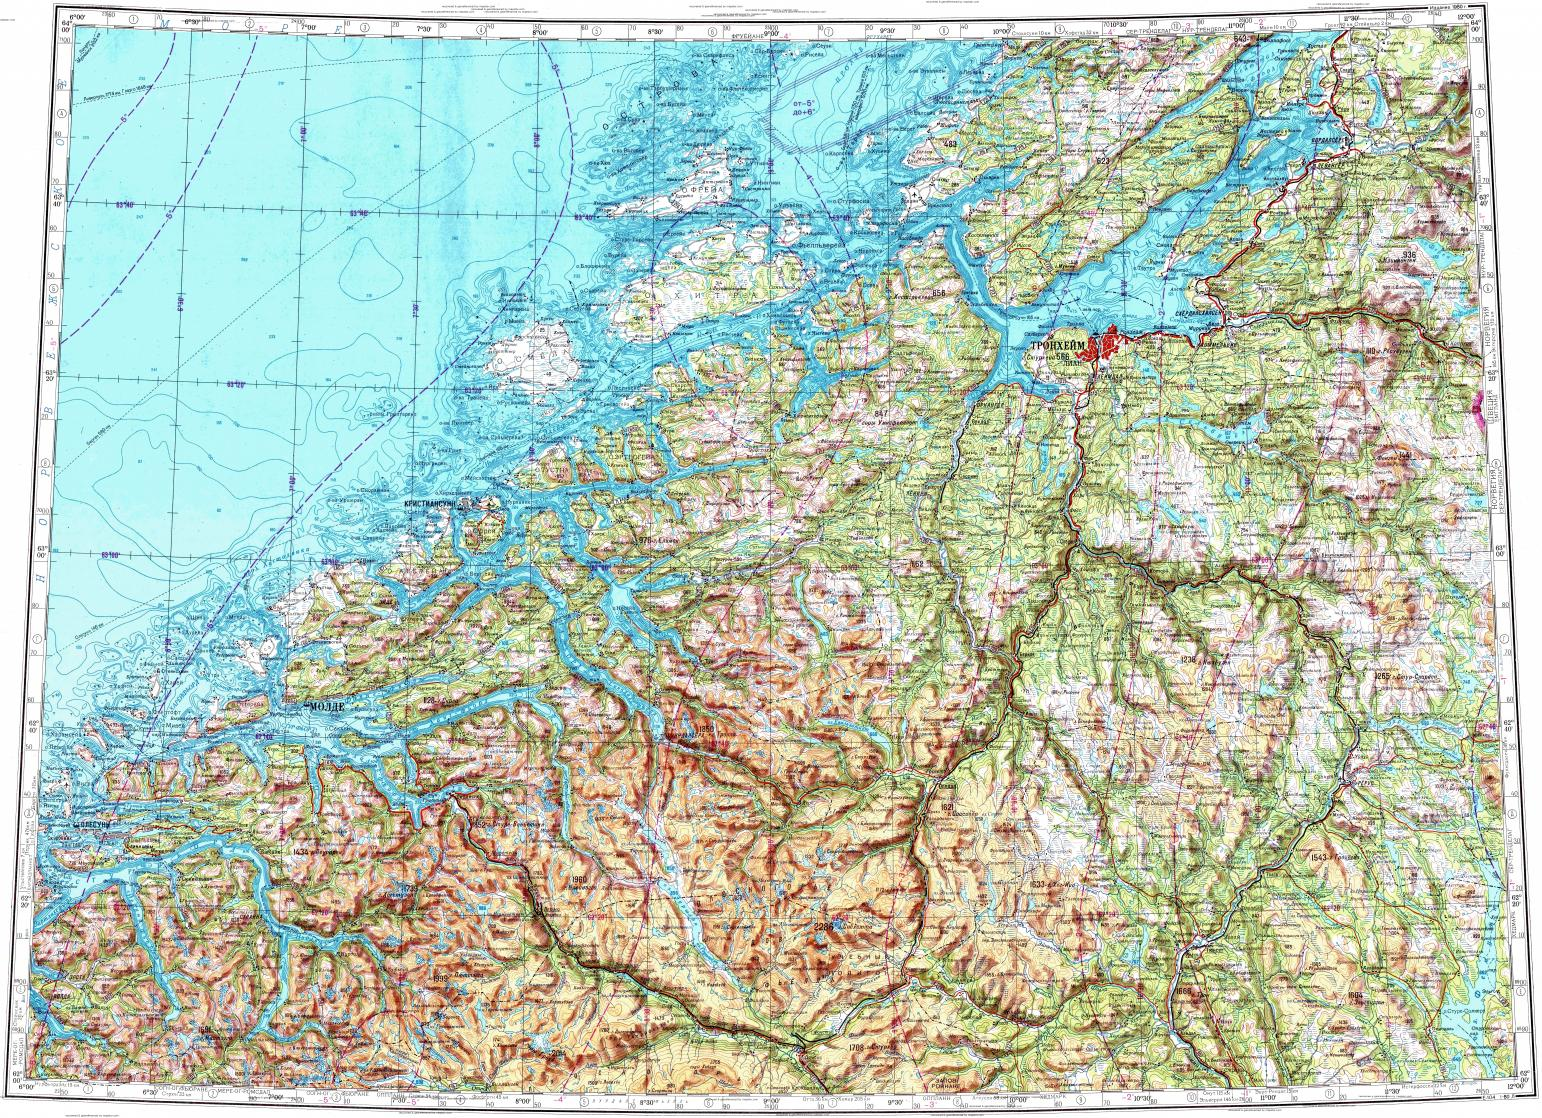 Download topographic map in area of Trondheim Alesund Molde